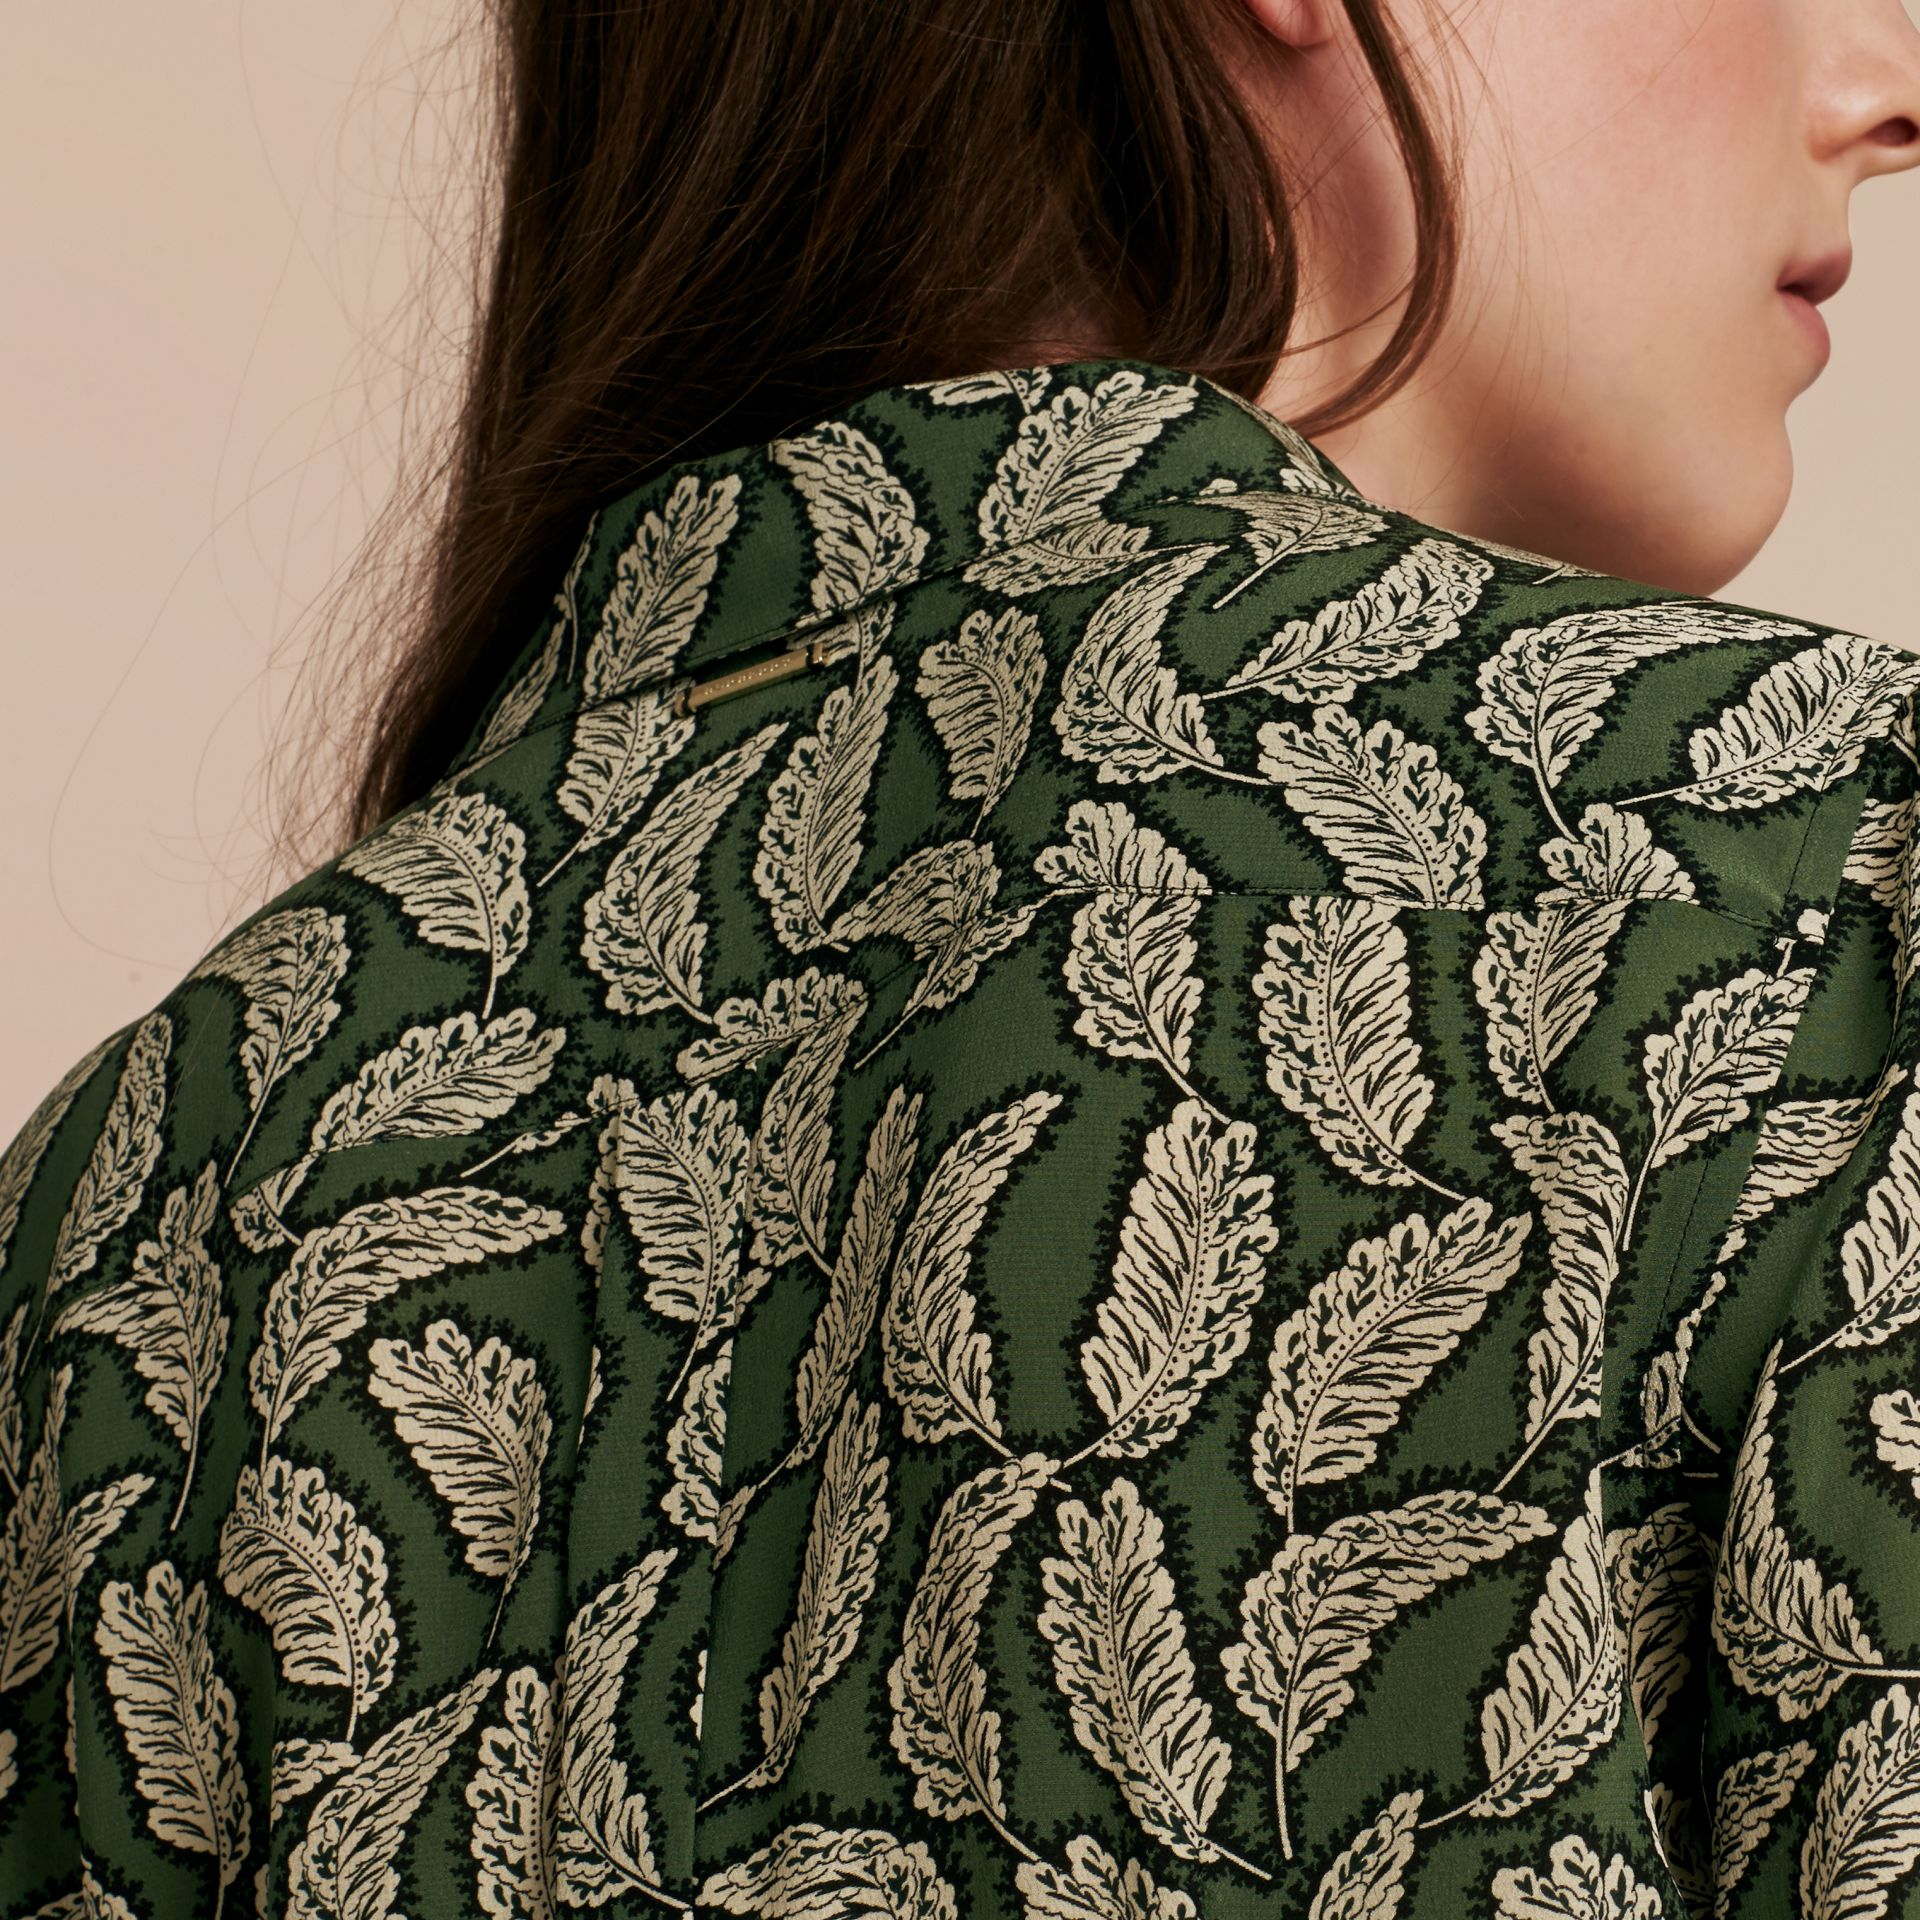 Dusty green Leaf Print Silk Shirt Dusty Green - gallery image 5